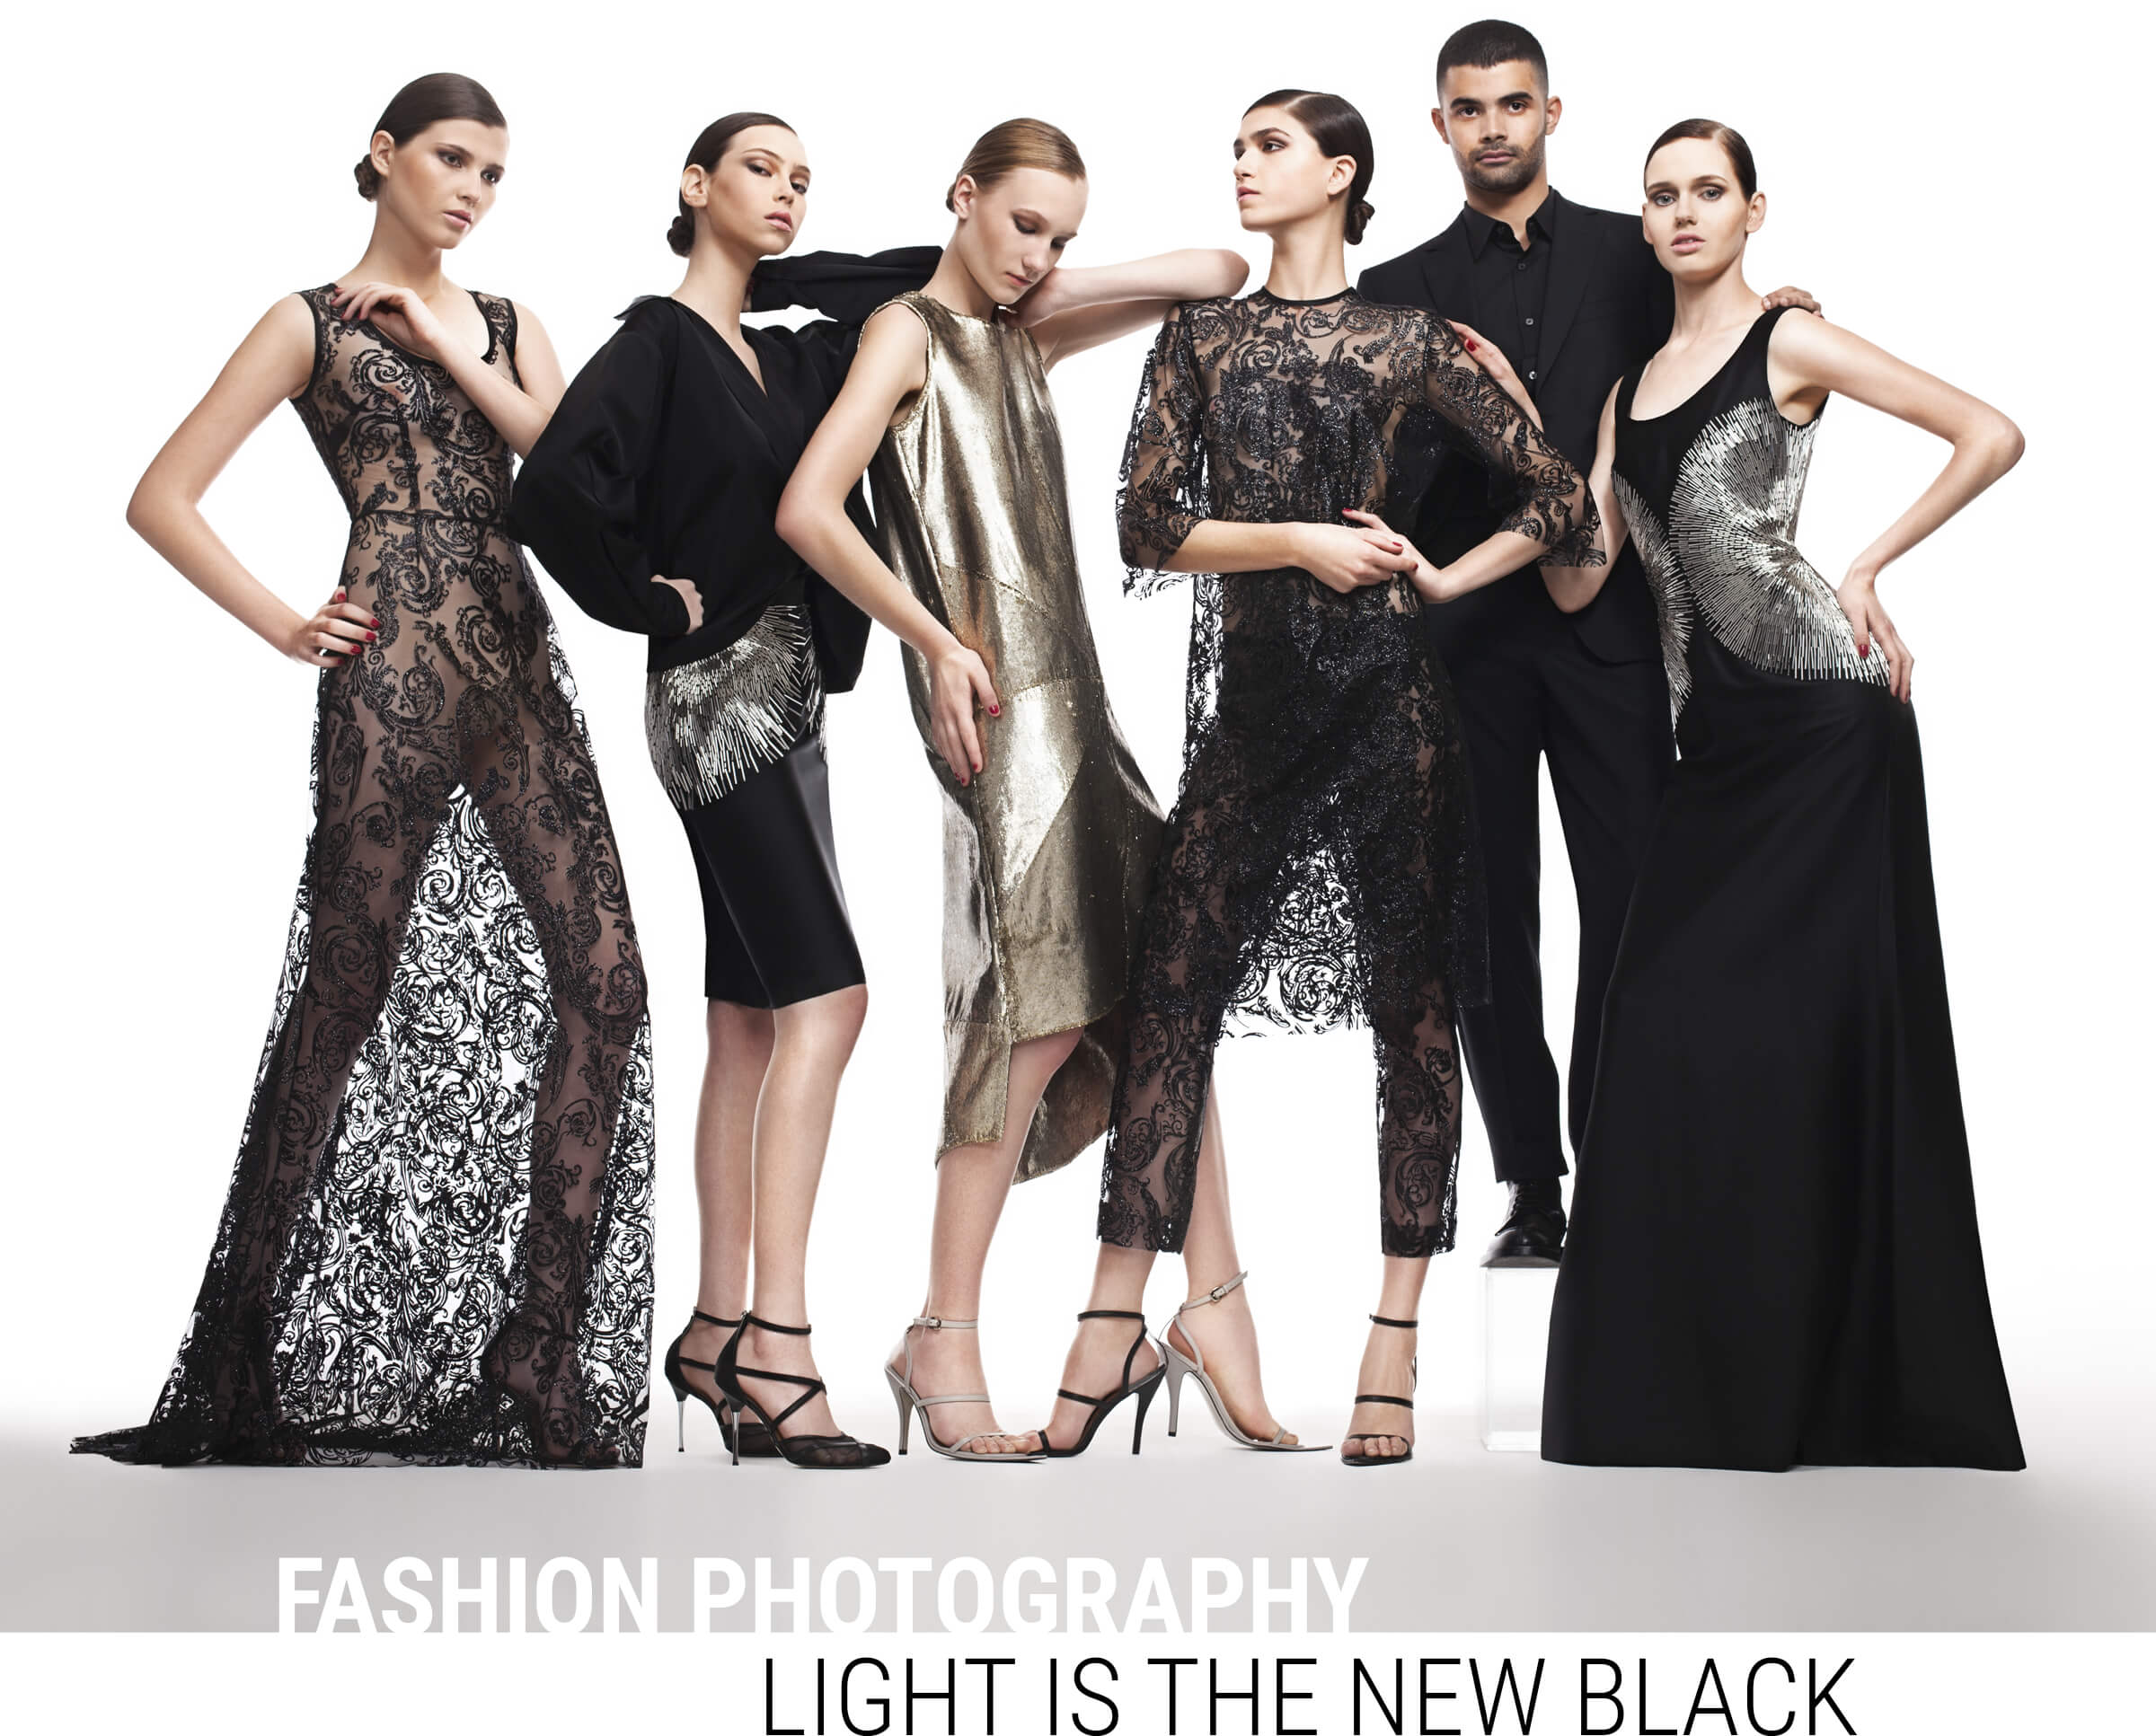 Fashion Photography - Light is the new black